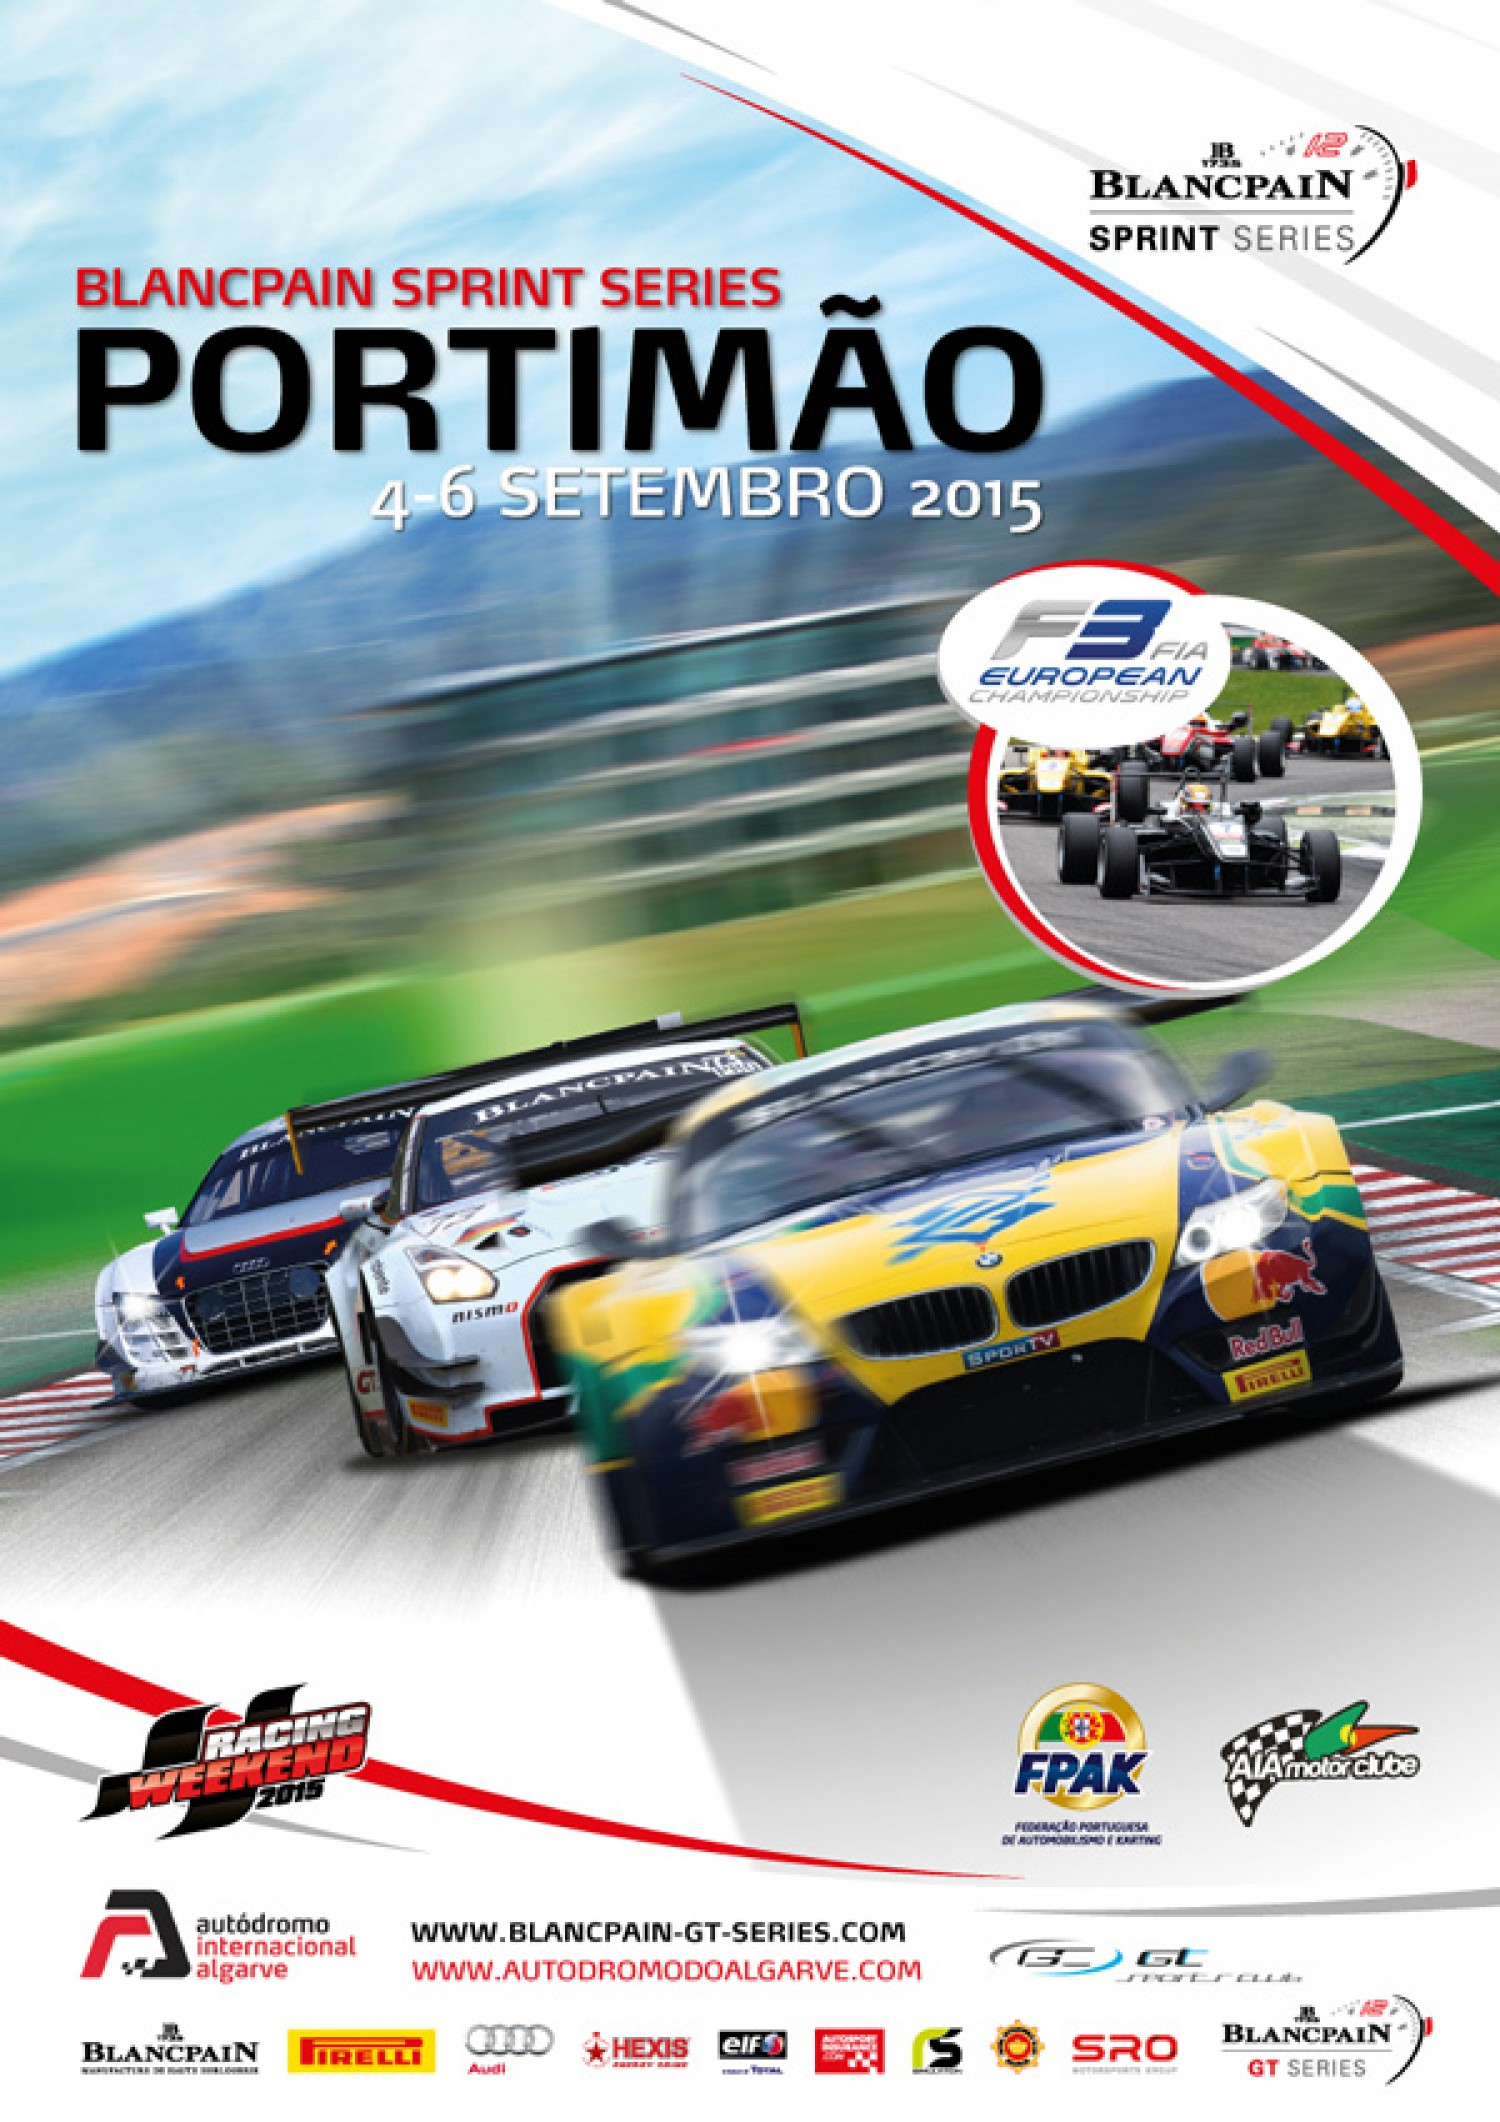 The fifth round of the Blancpain Sprint Series will be held at the Autódromo Internacional do Algarve